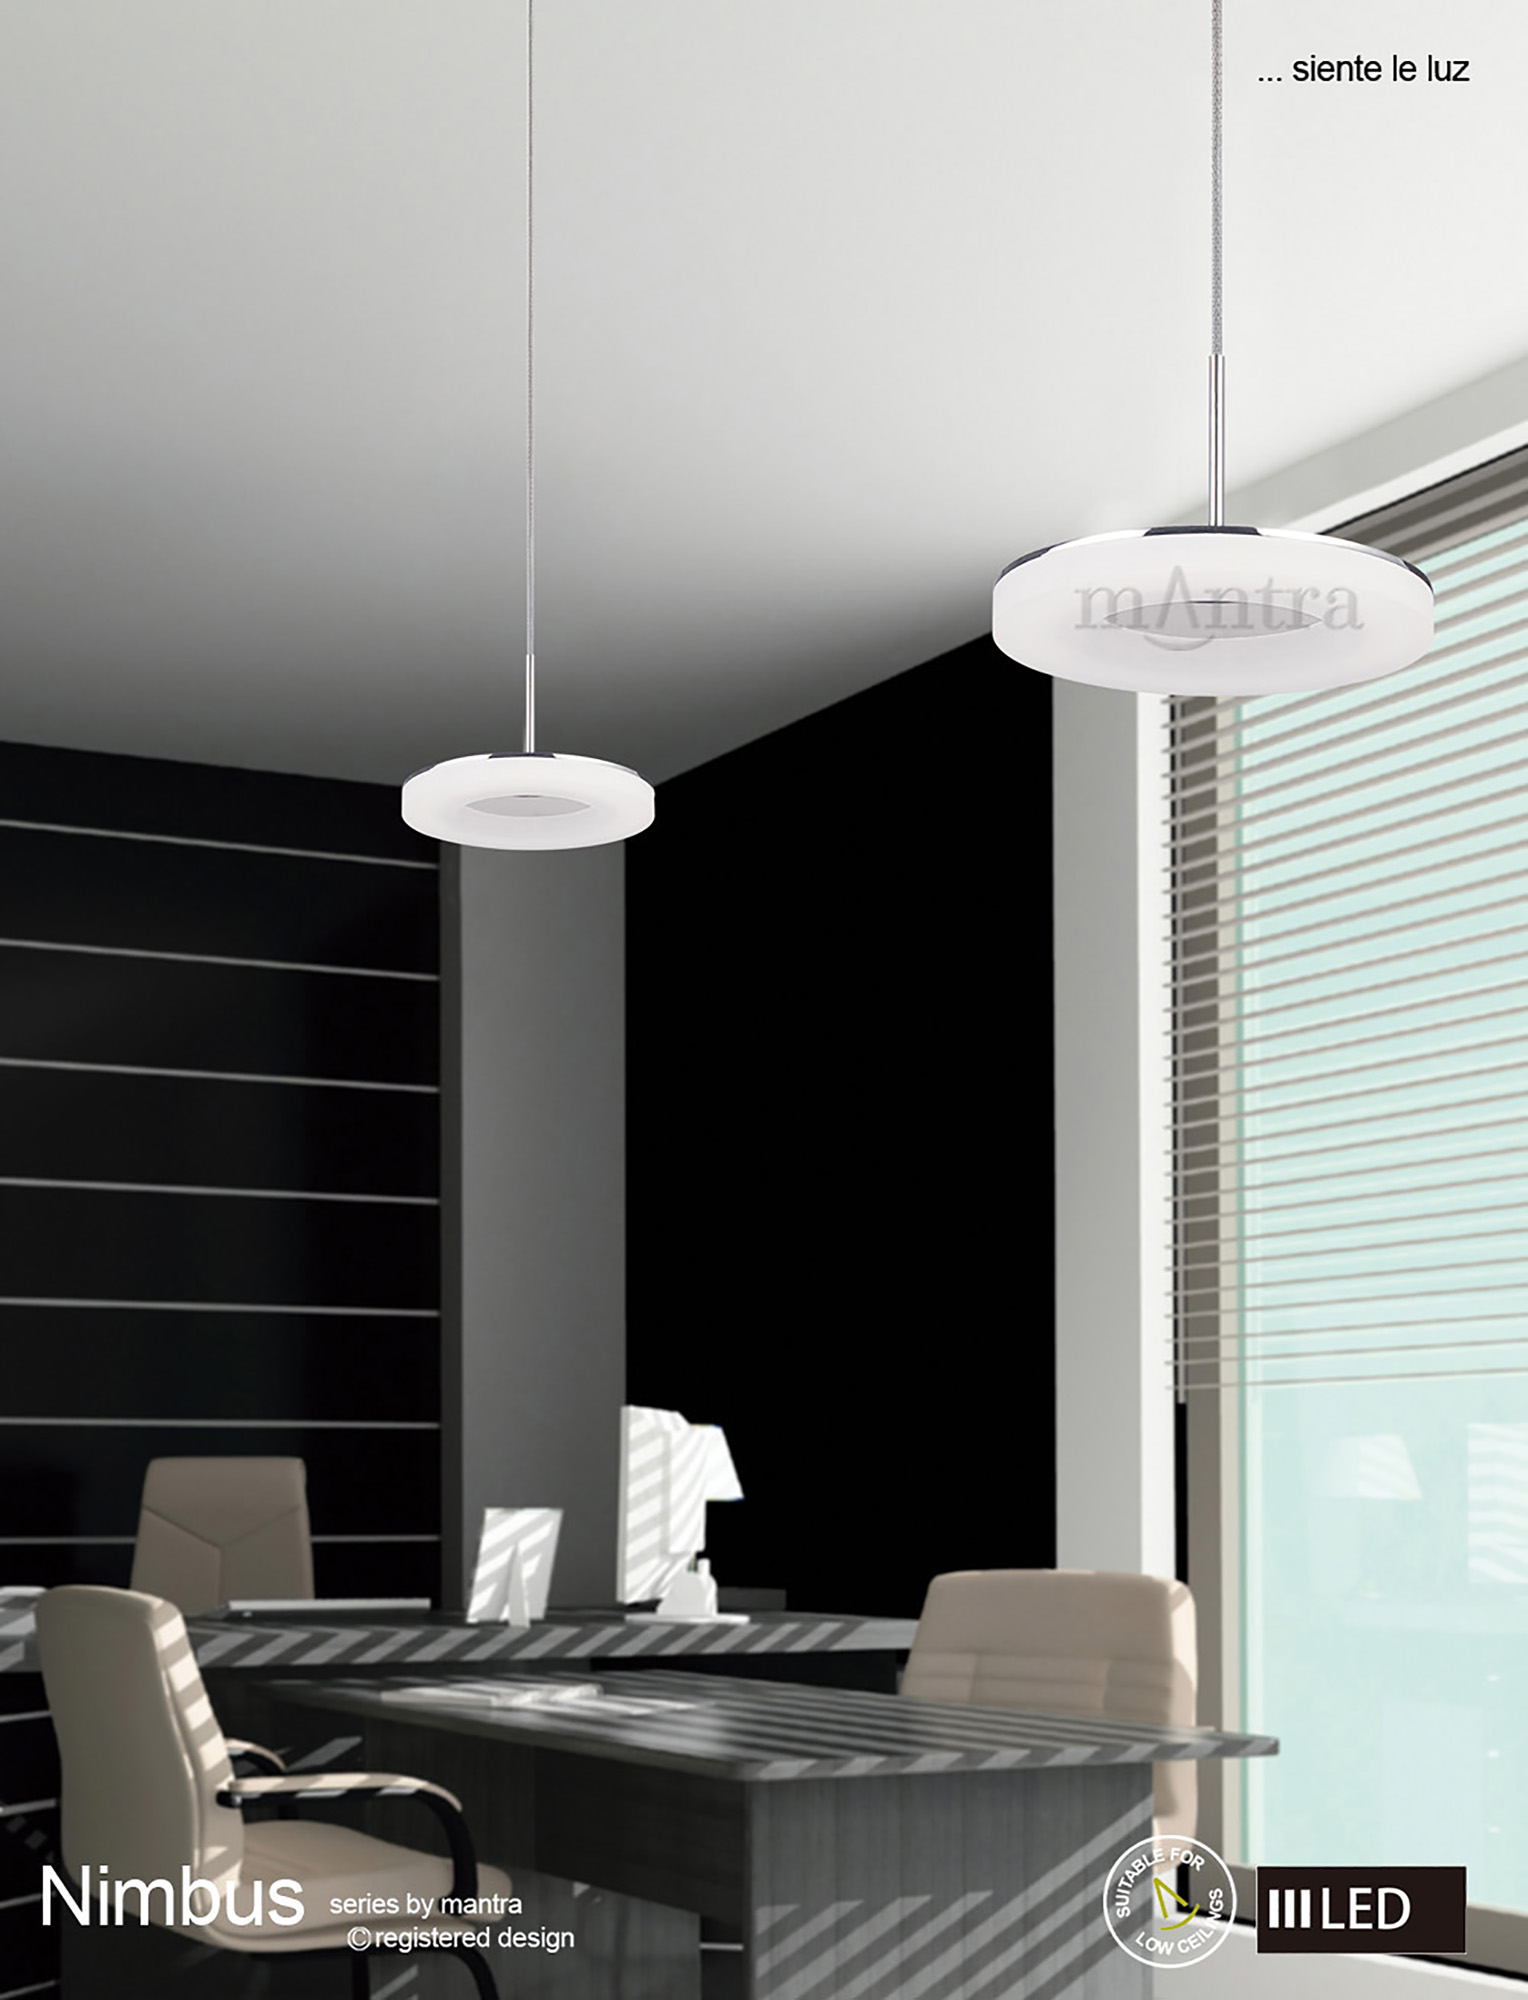 Nimbus Ceiling Lights Mantra Surface Spot Lights